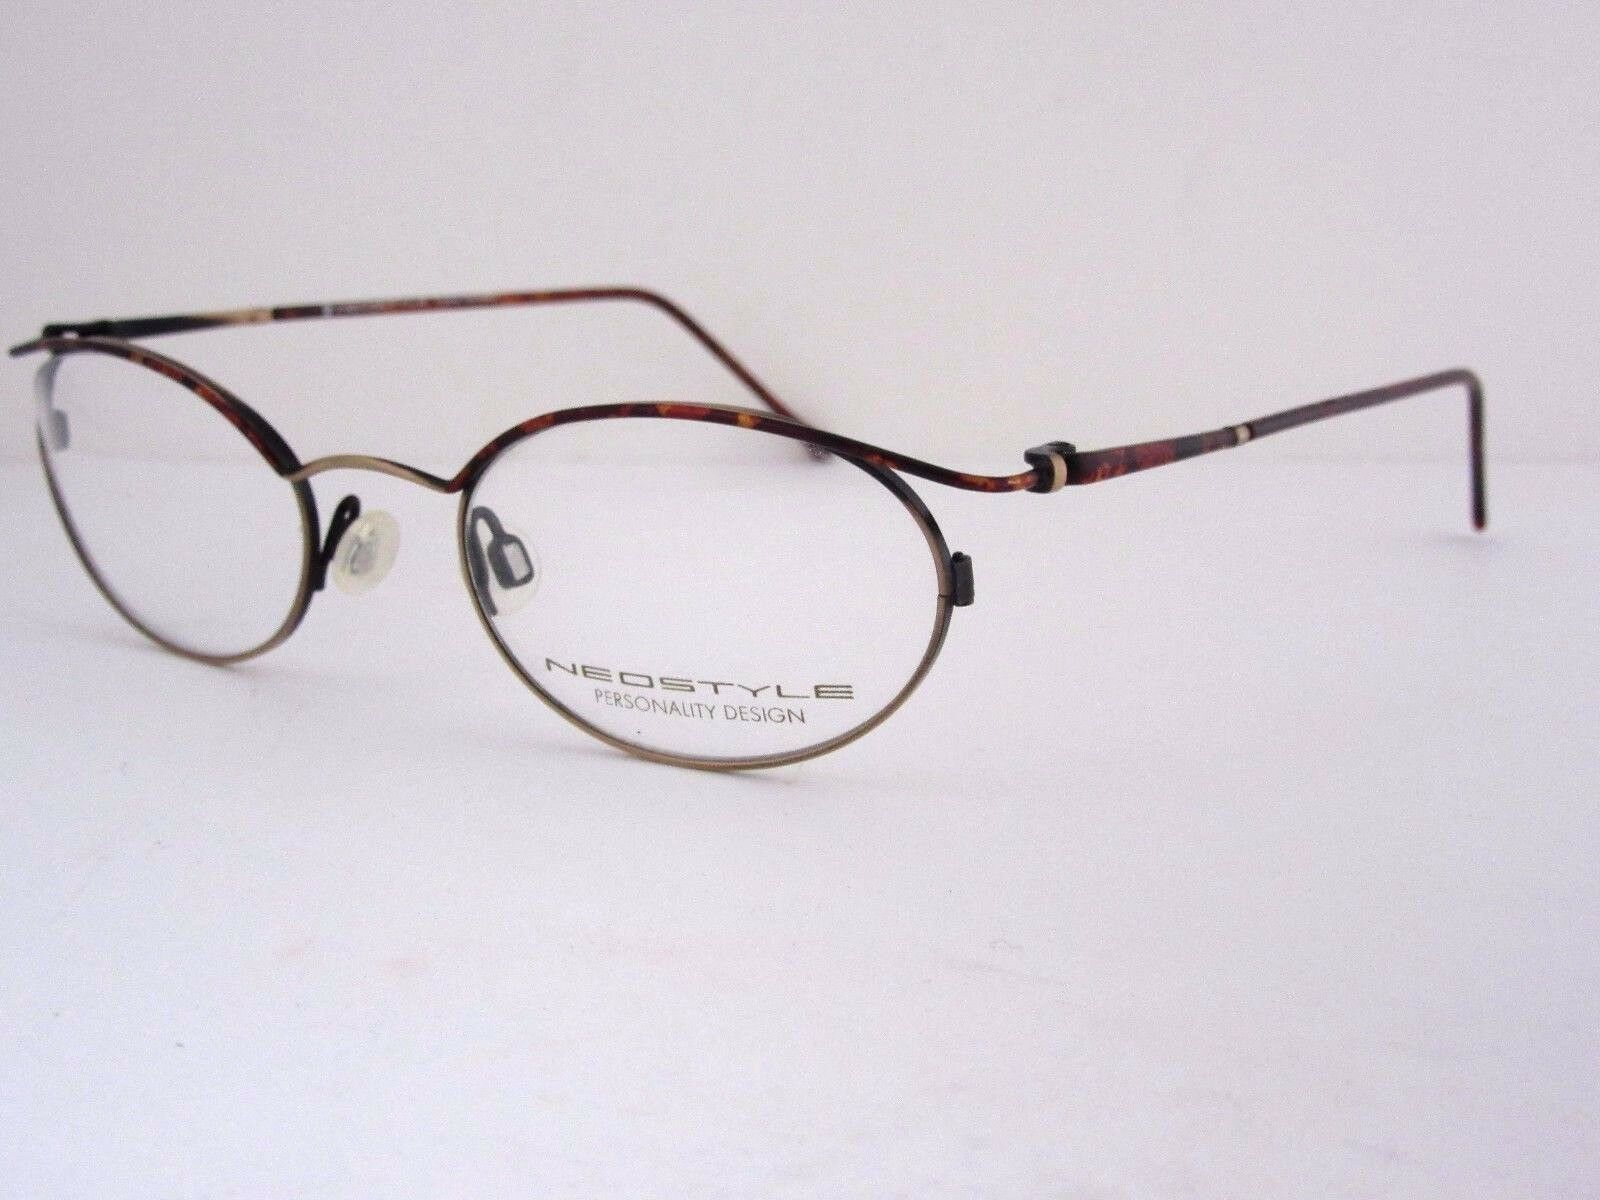 511812ed349 NEOSTYLE College 155 378 Eyeglasses Frame Germany NOS for sale ...